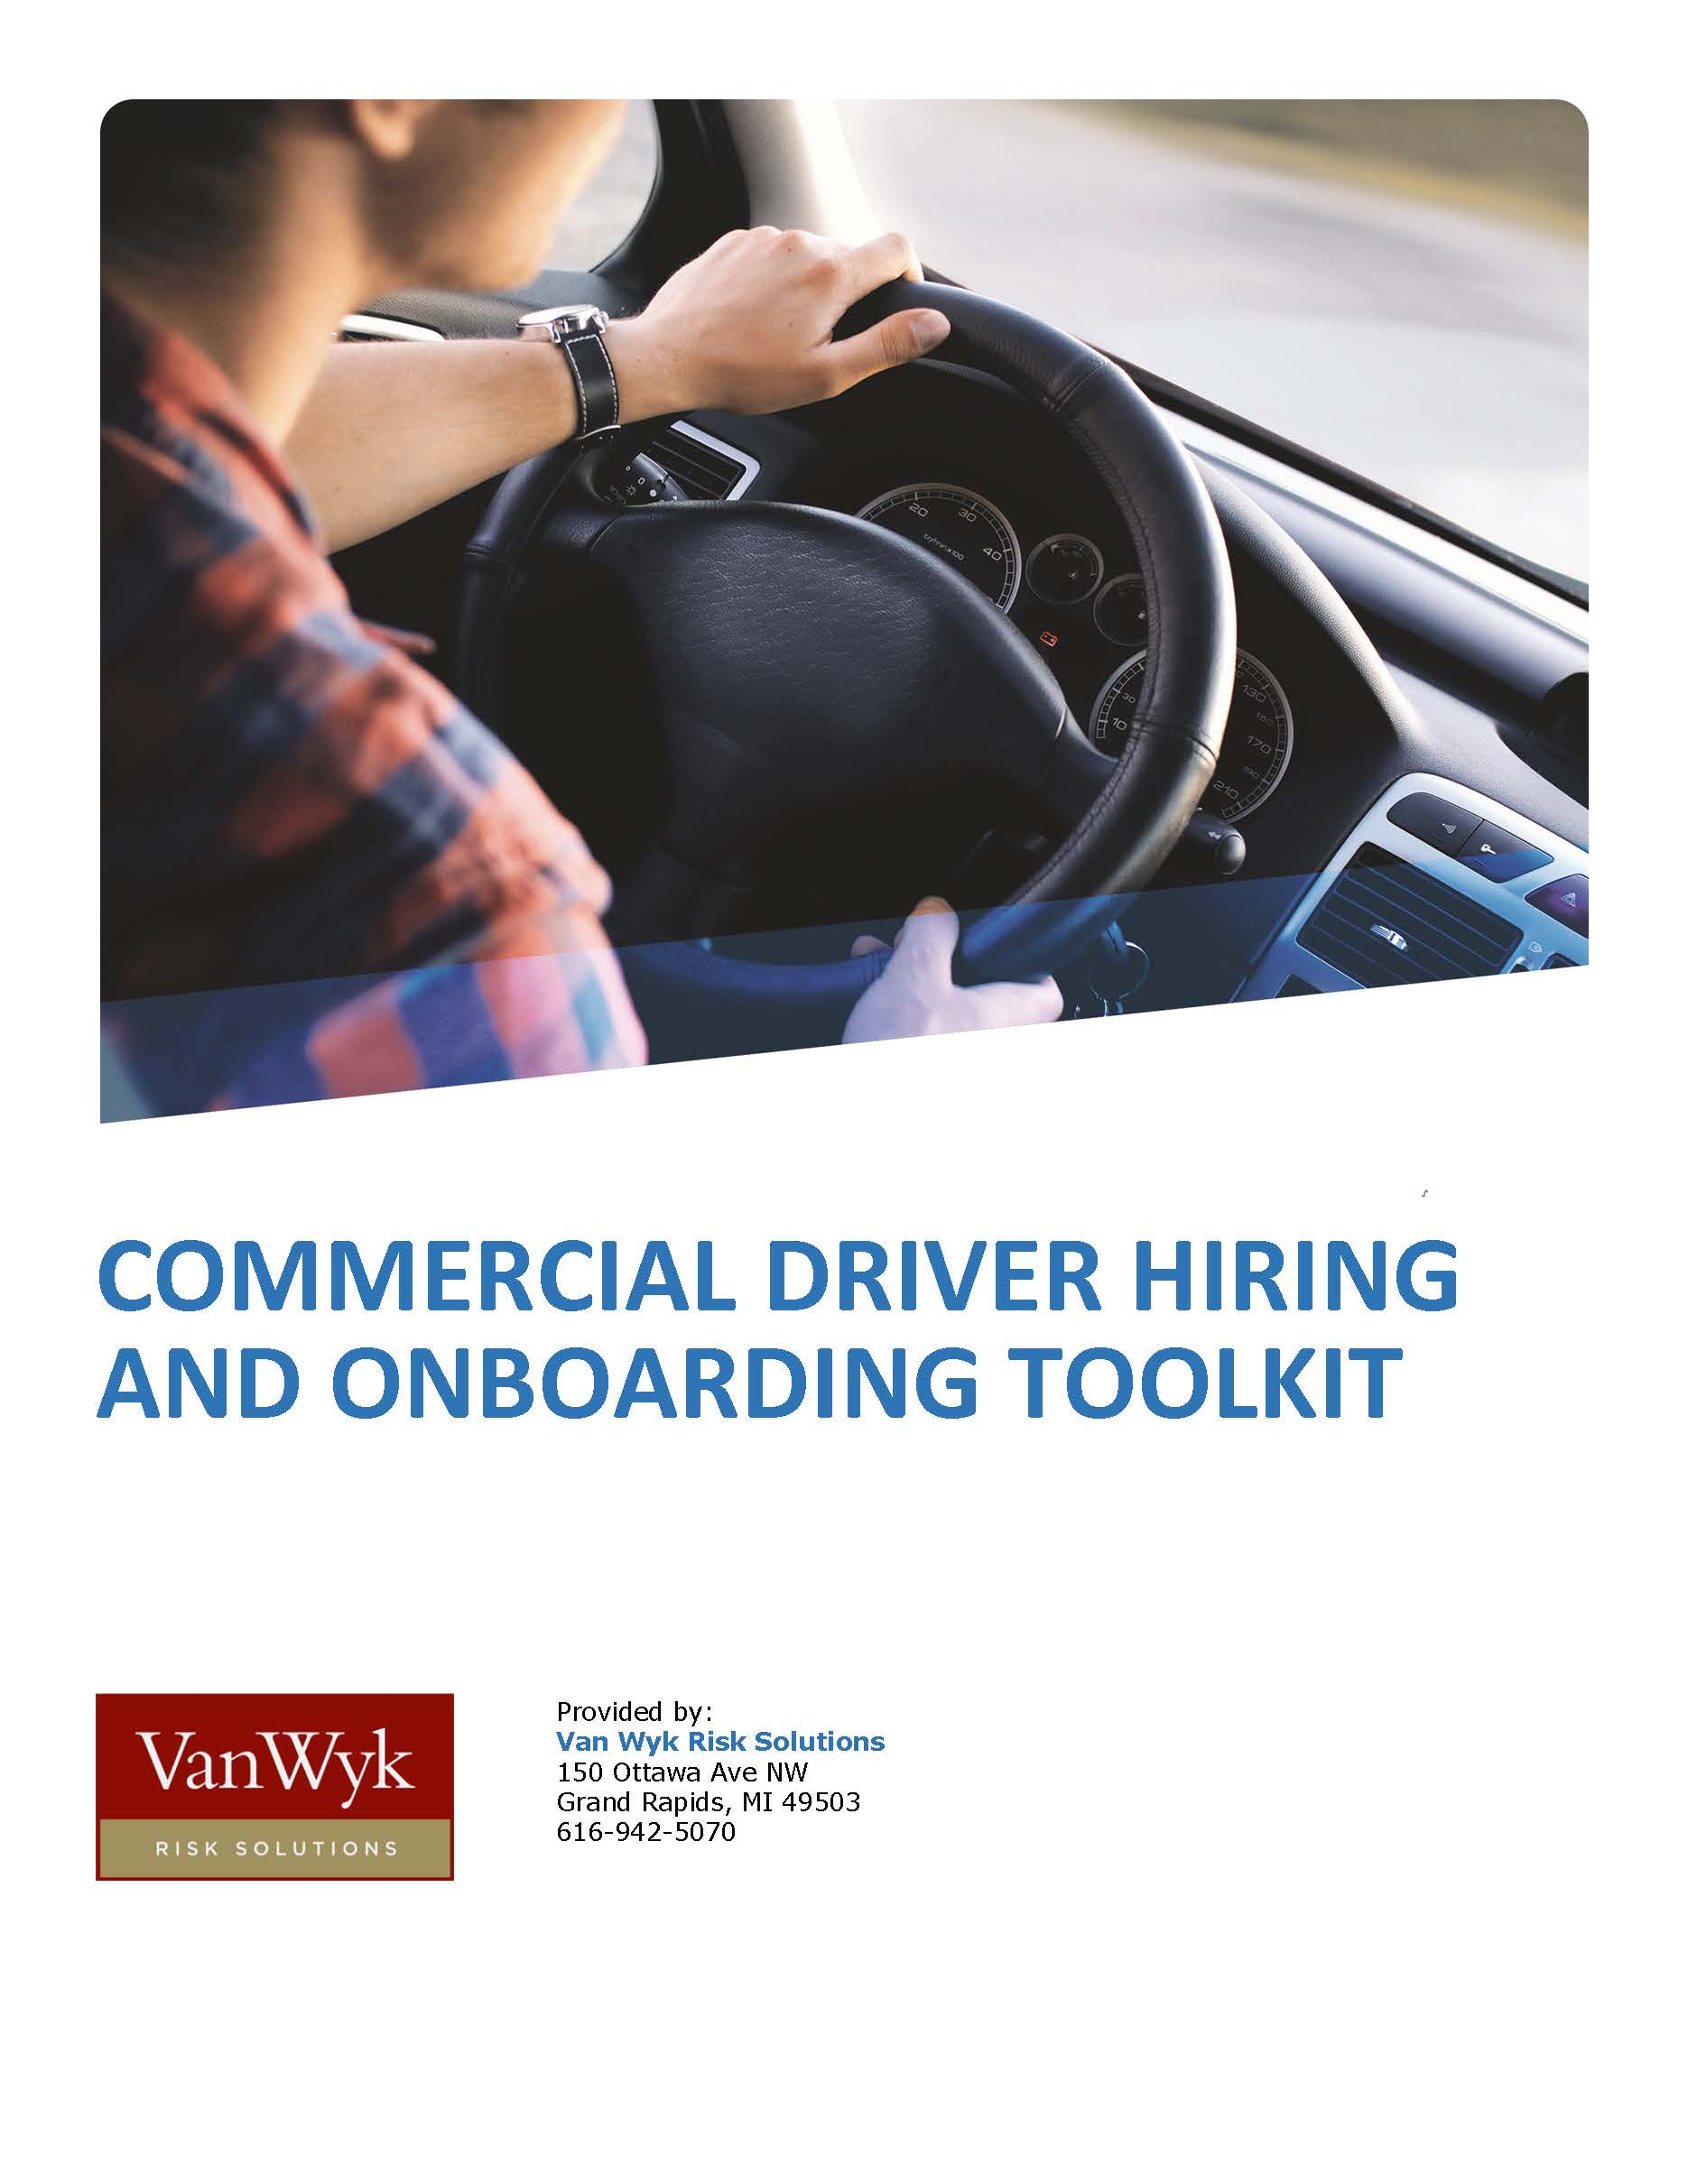 Commercial Driver Hiring and Onboarding Toolkit